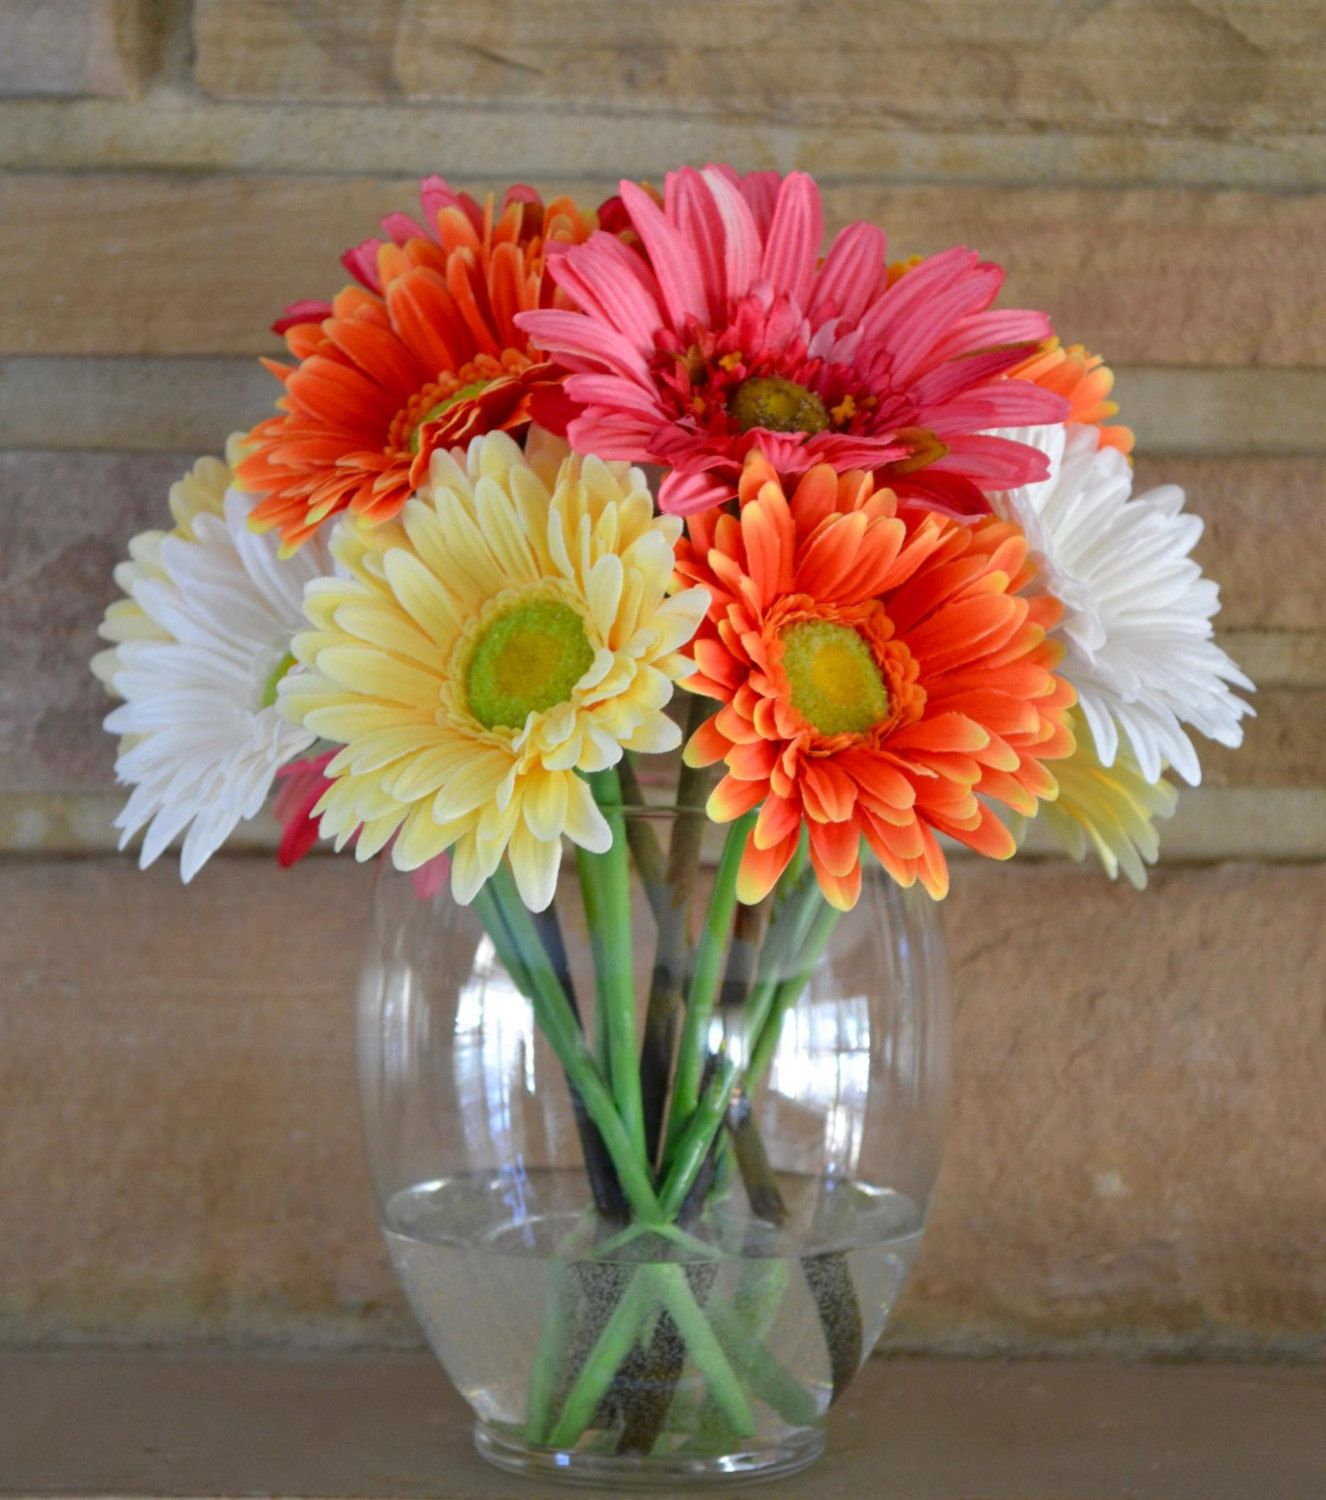 33 Beautiful Flower Beds Adding Bright Centerpieces To: Gerbera Daisy Flower Arrangement, In Glass Vase, Faux